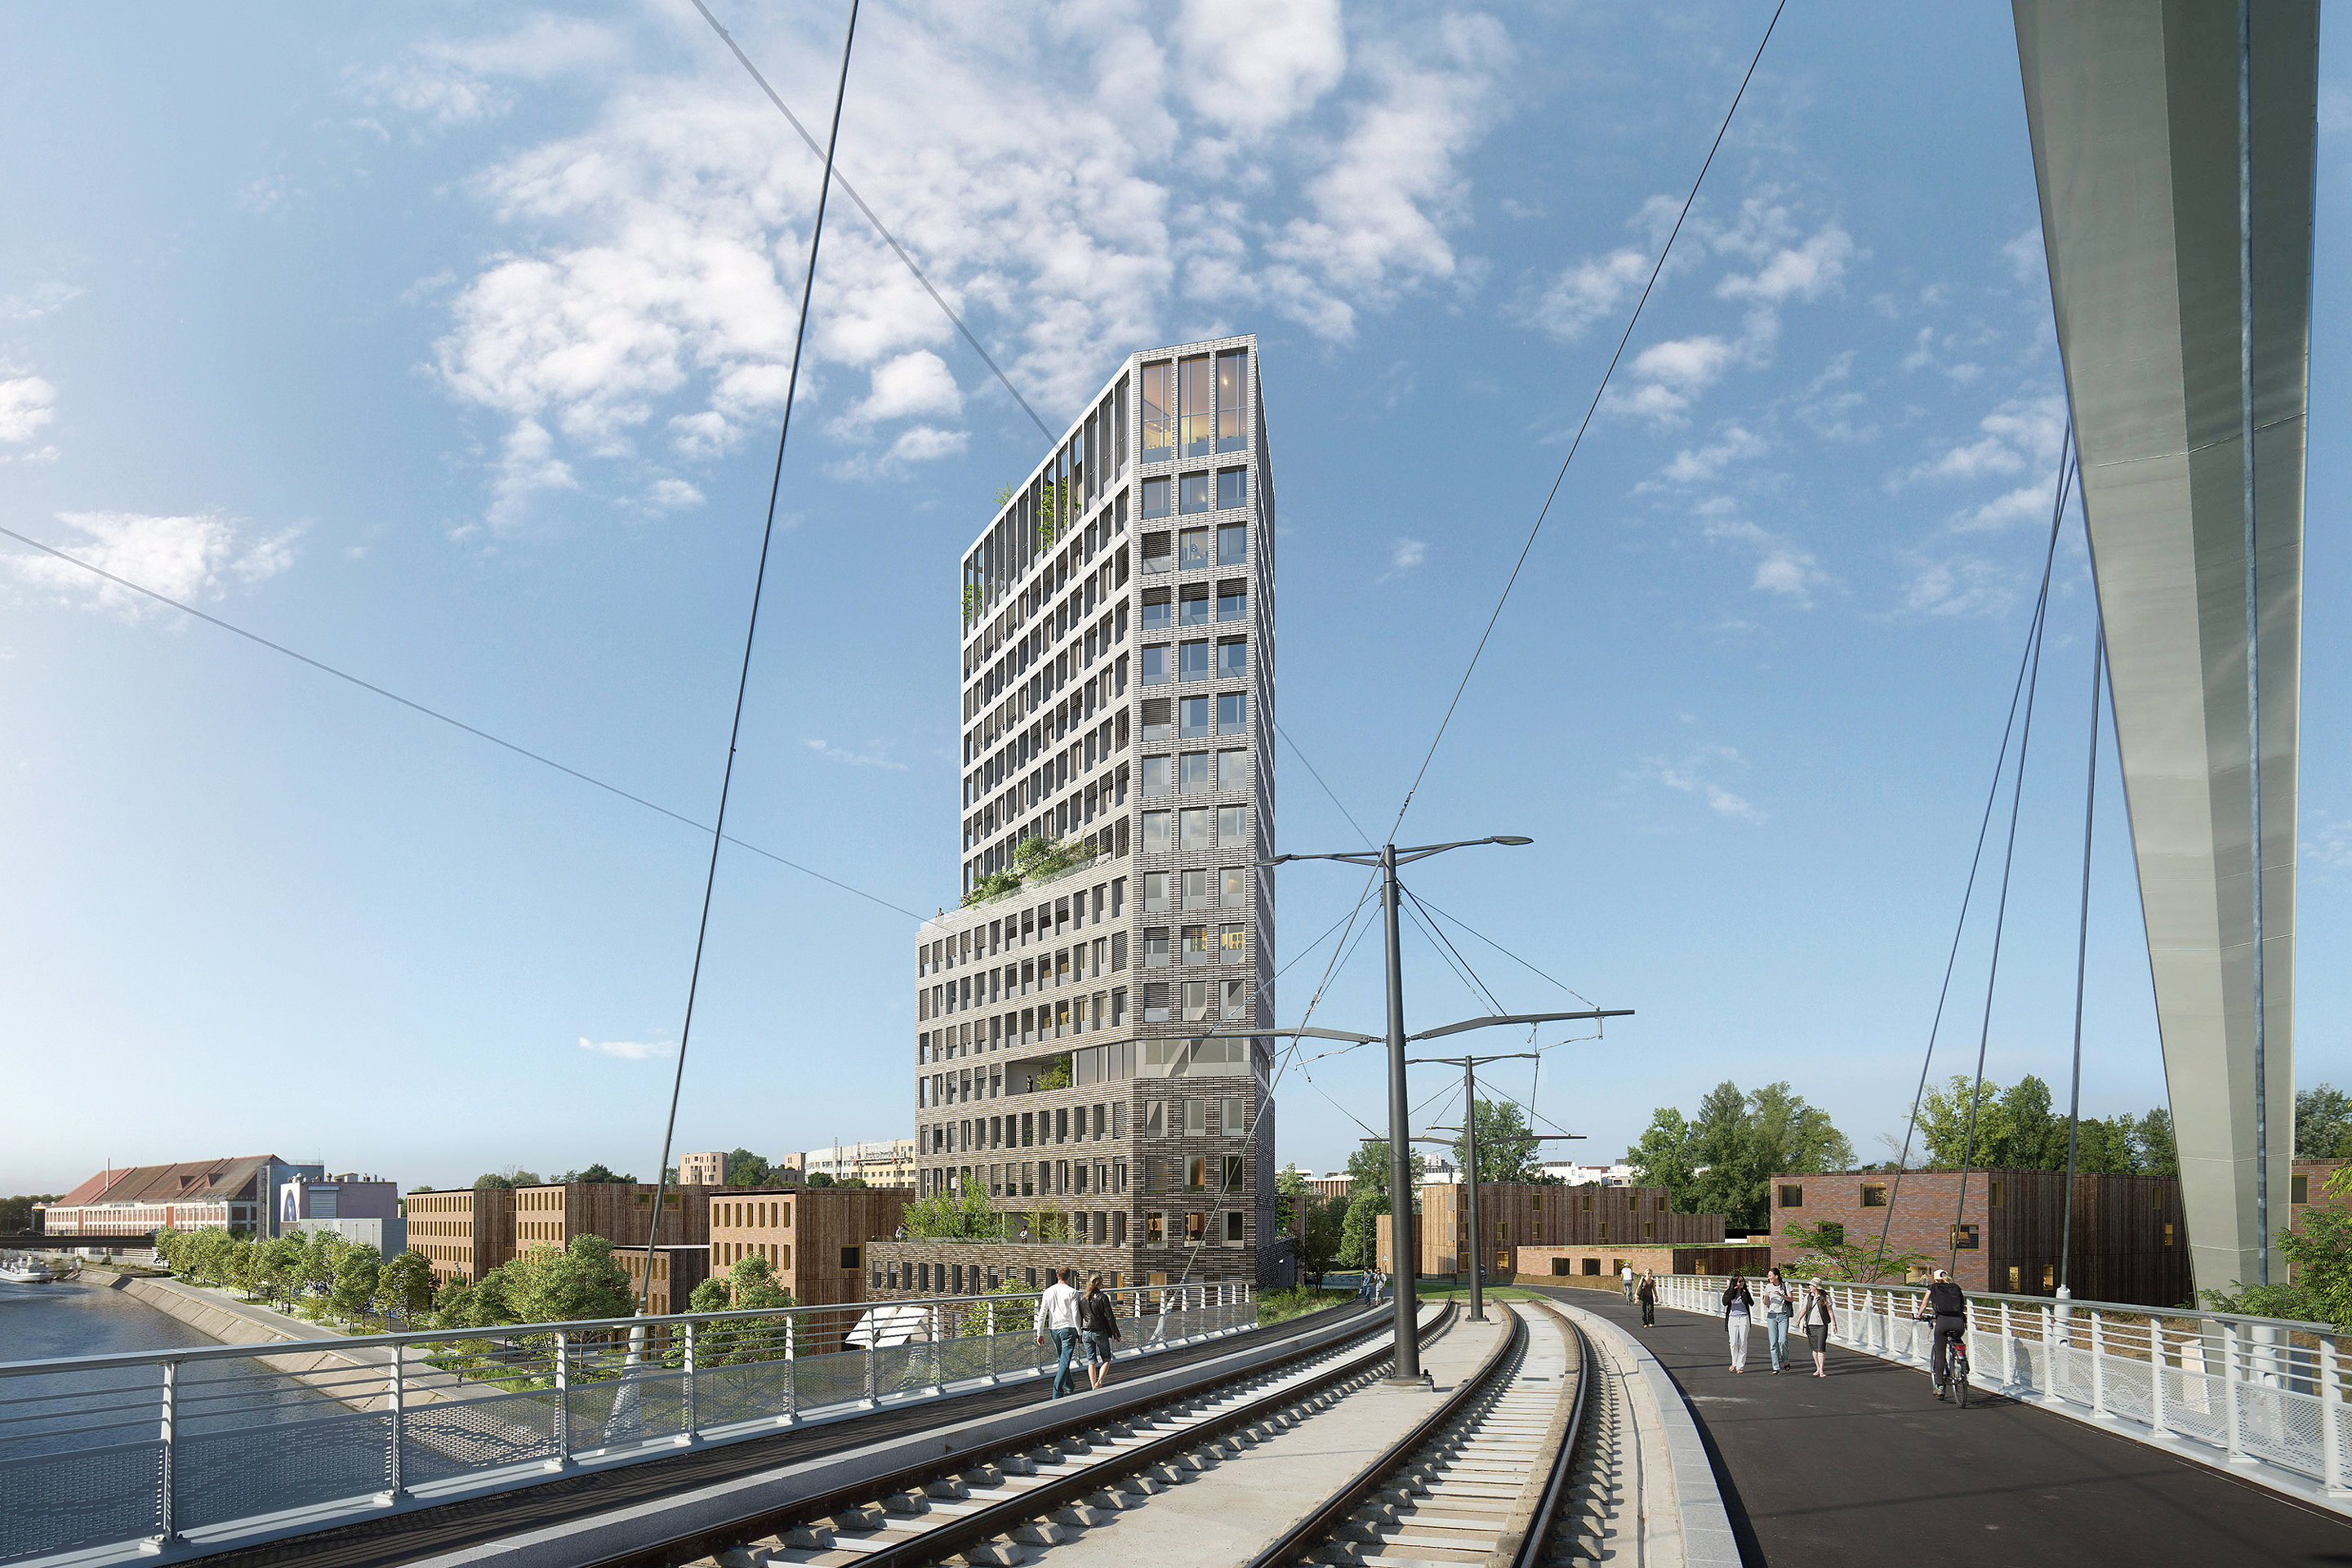 Strasbourg Residential Tower